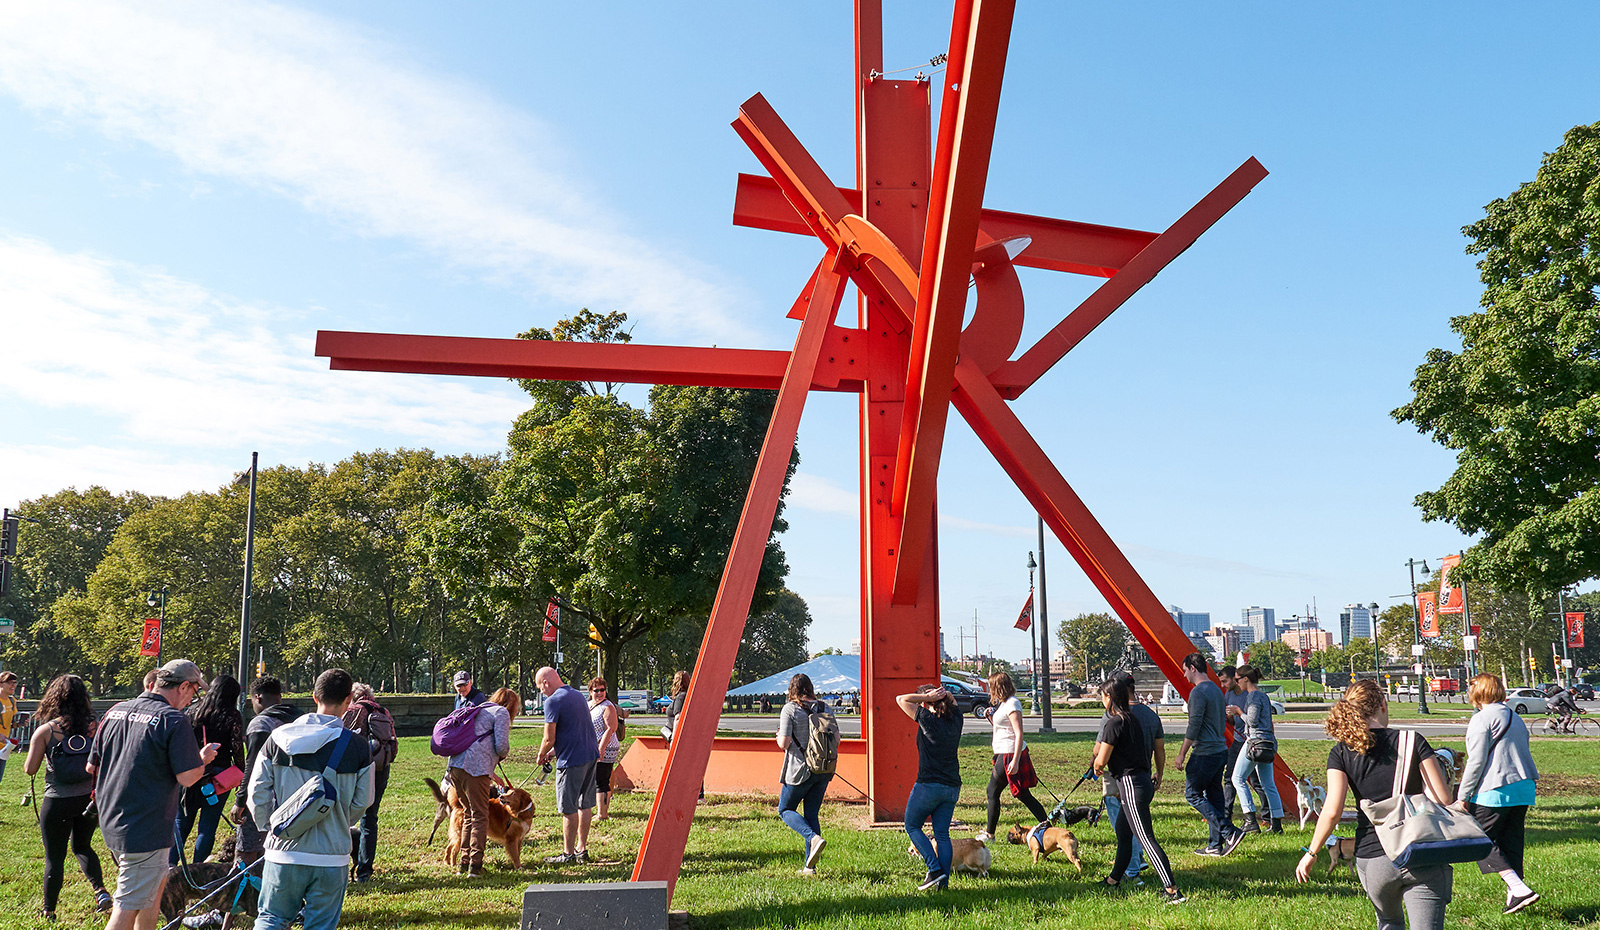 Bright red abstract i-beam sculpture on a bright sunny day with people walking their dogs around the sculpture. Artist is Mark di Suvero.